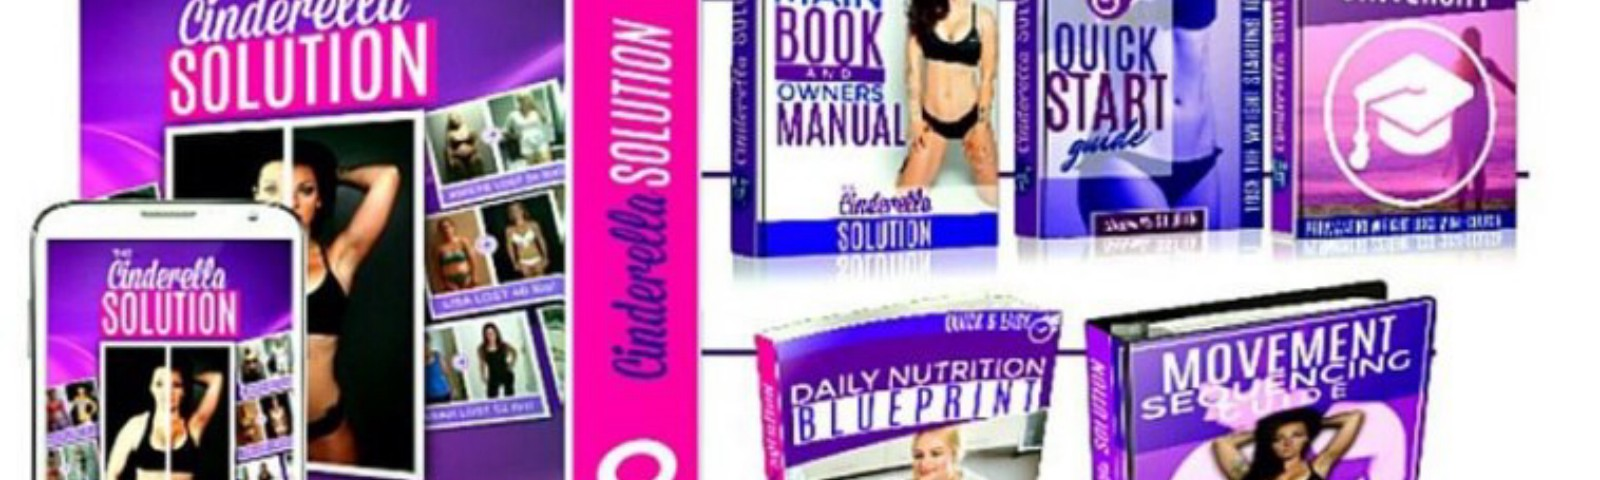 Diet Cinderella Solution Outlet Student Discount March